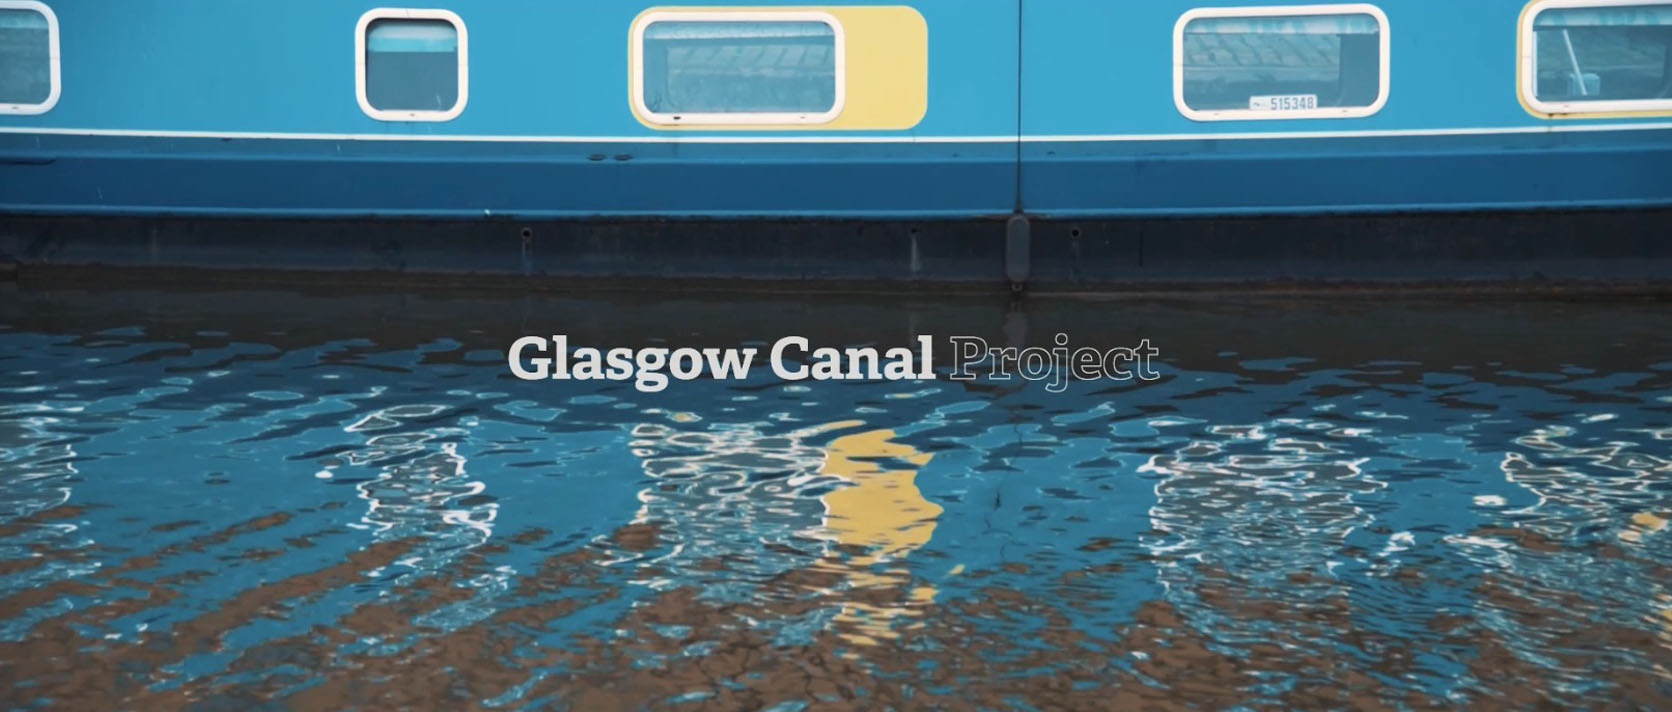 Glasgow Canal Project - Water Activity Video